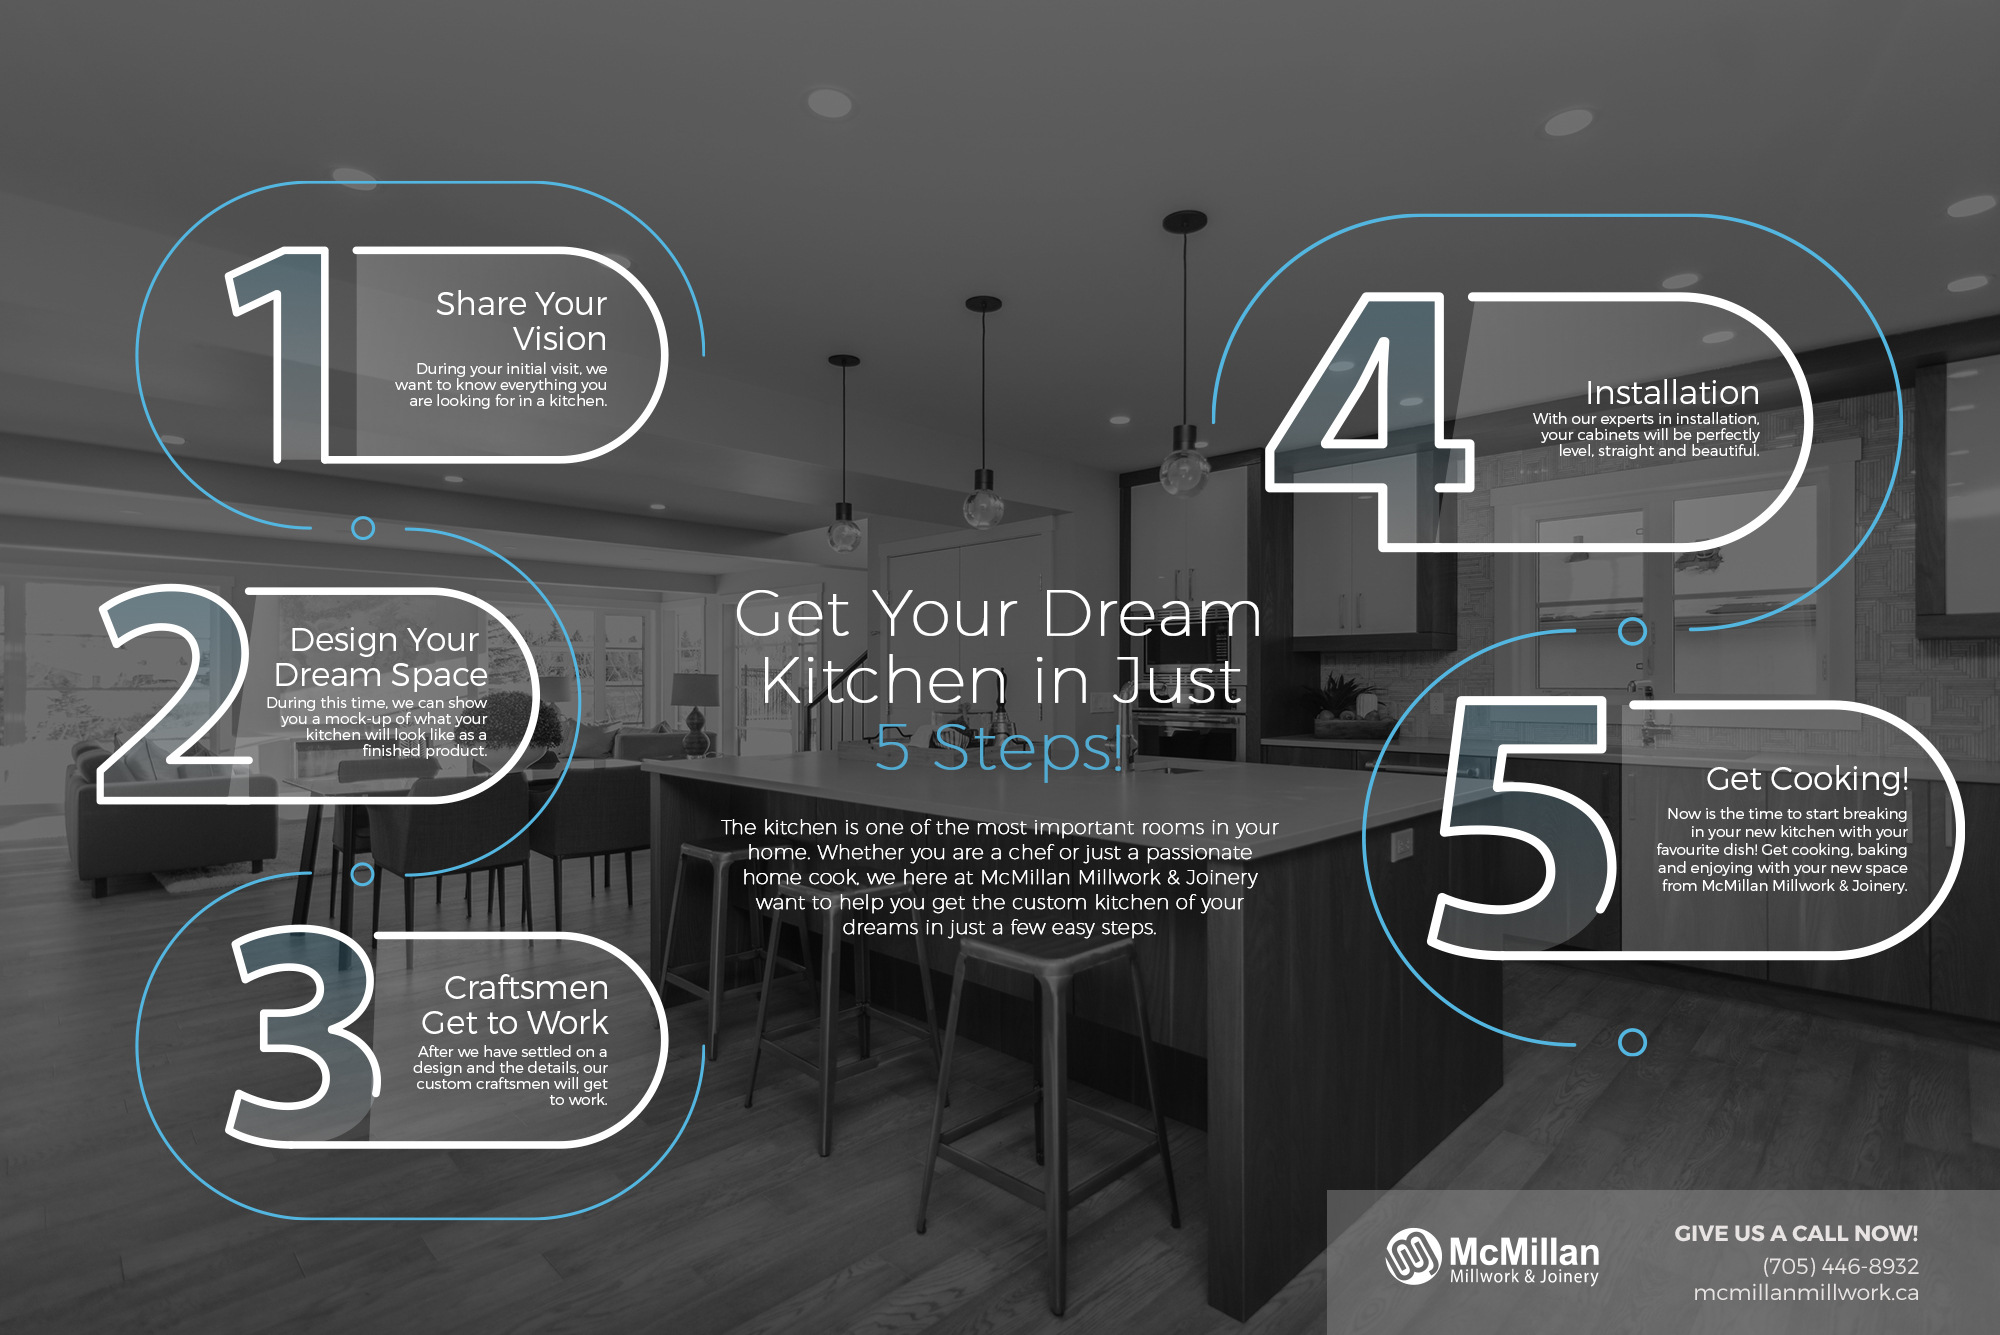 Get Your Dream Kitchen in Just 5 Steps! [infographic]